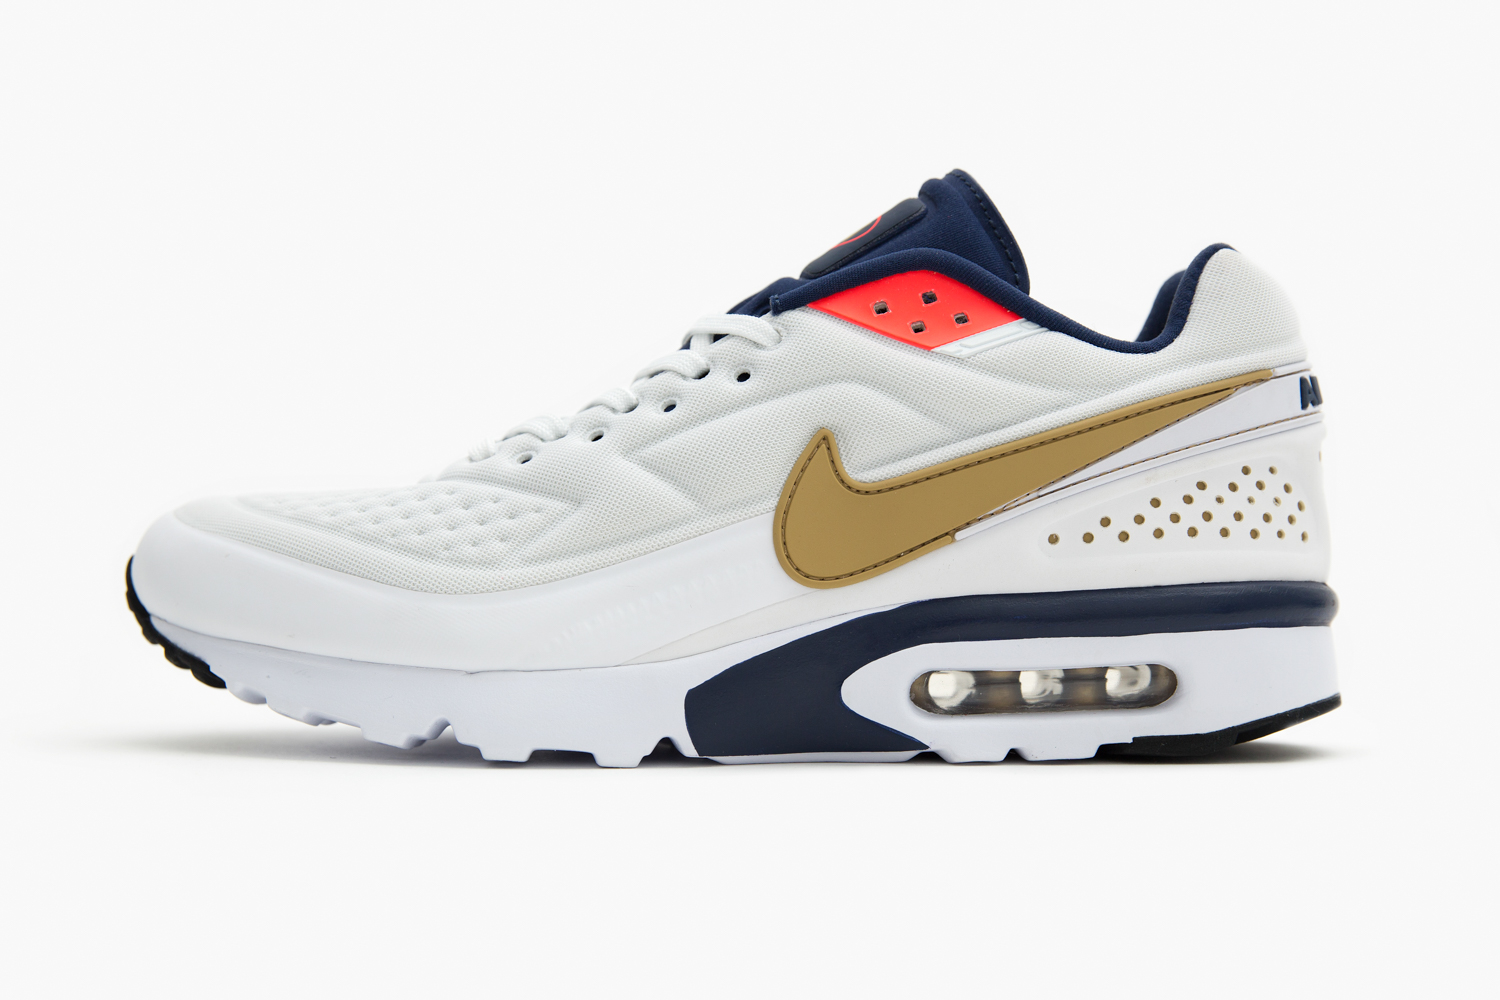 7d8b4e7872 low cost nike air classic bw usa 2016 olympics ed2e8 81a0f; official store  niketheandnowolympicpackprestopegasusflyknitclassicbwsize 3. nike air 01db8  b8209